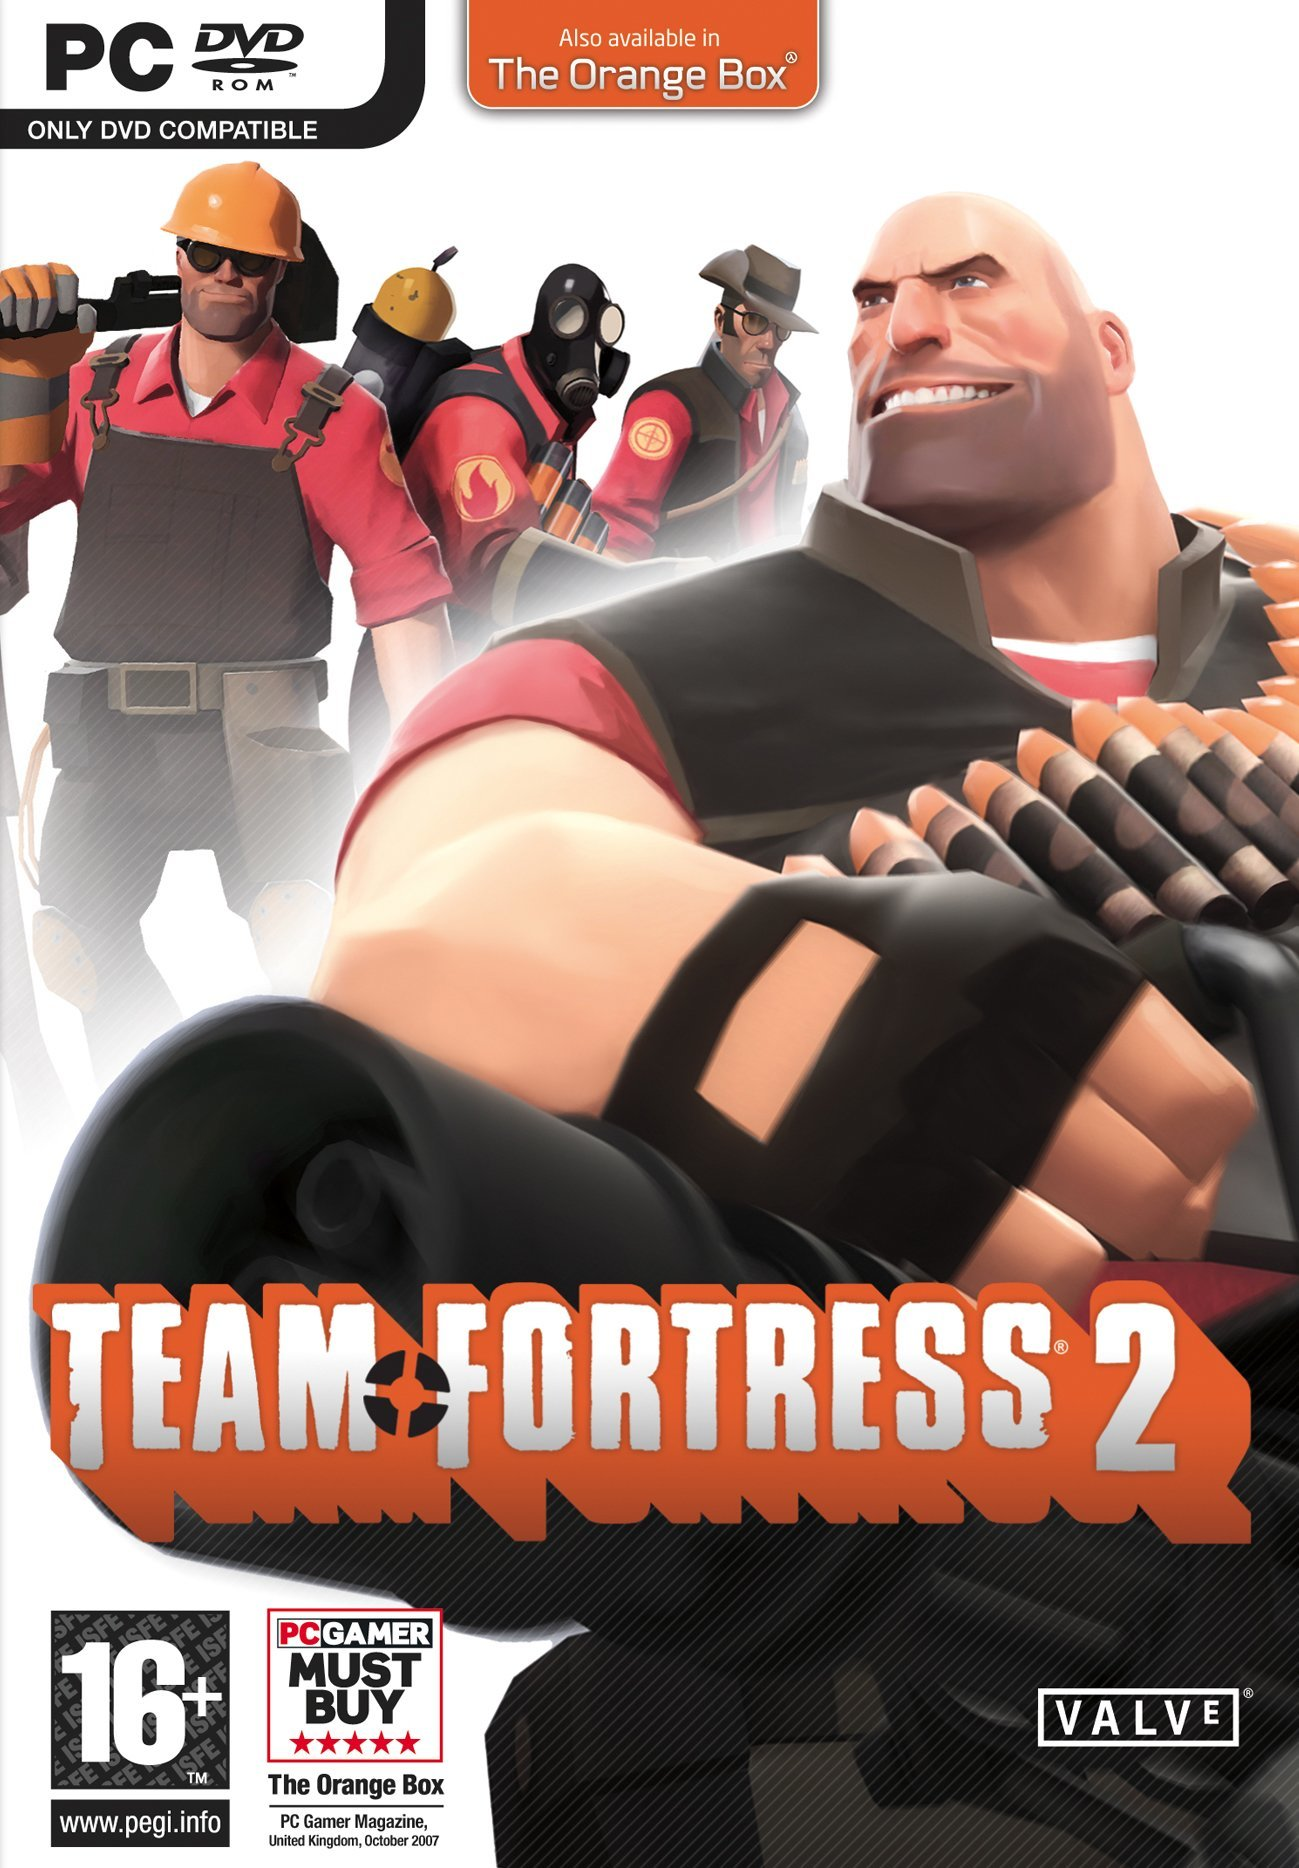 Team Fortress 2 (Video Game 2007) - IMDb